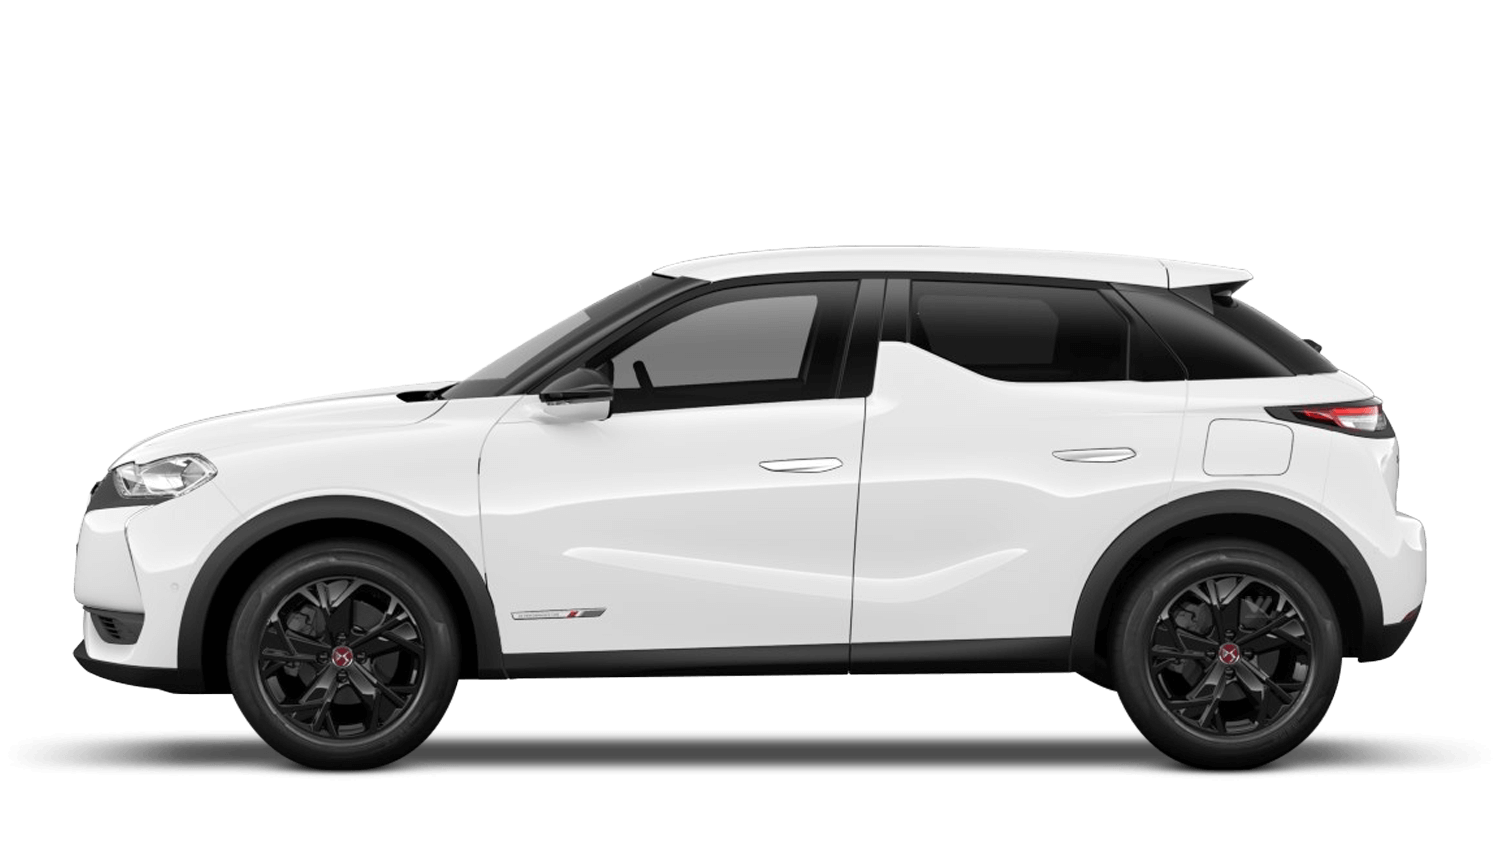 DS 3 CROSSBACK Leasing Offers